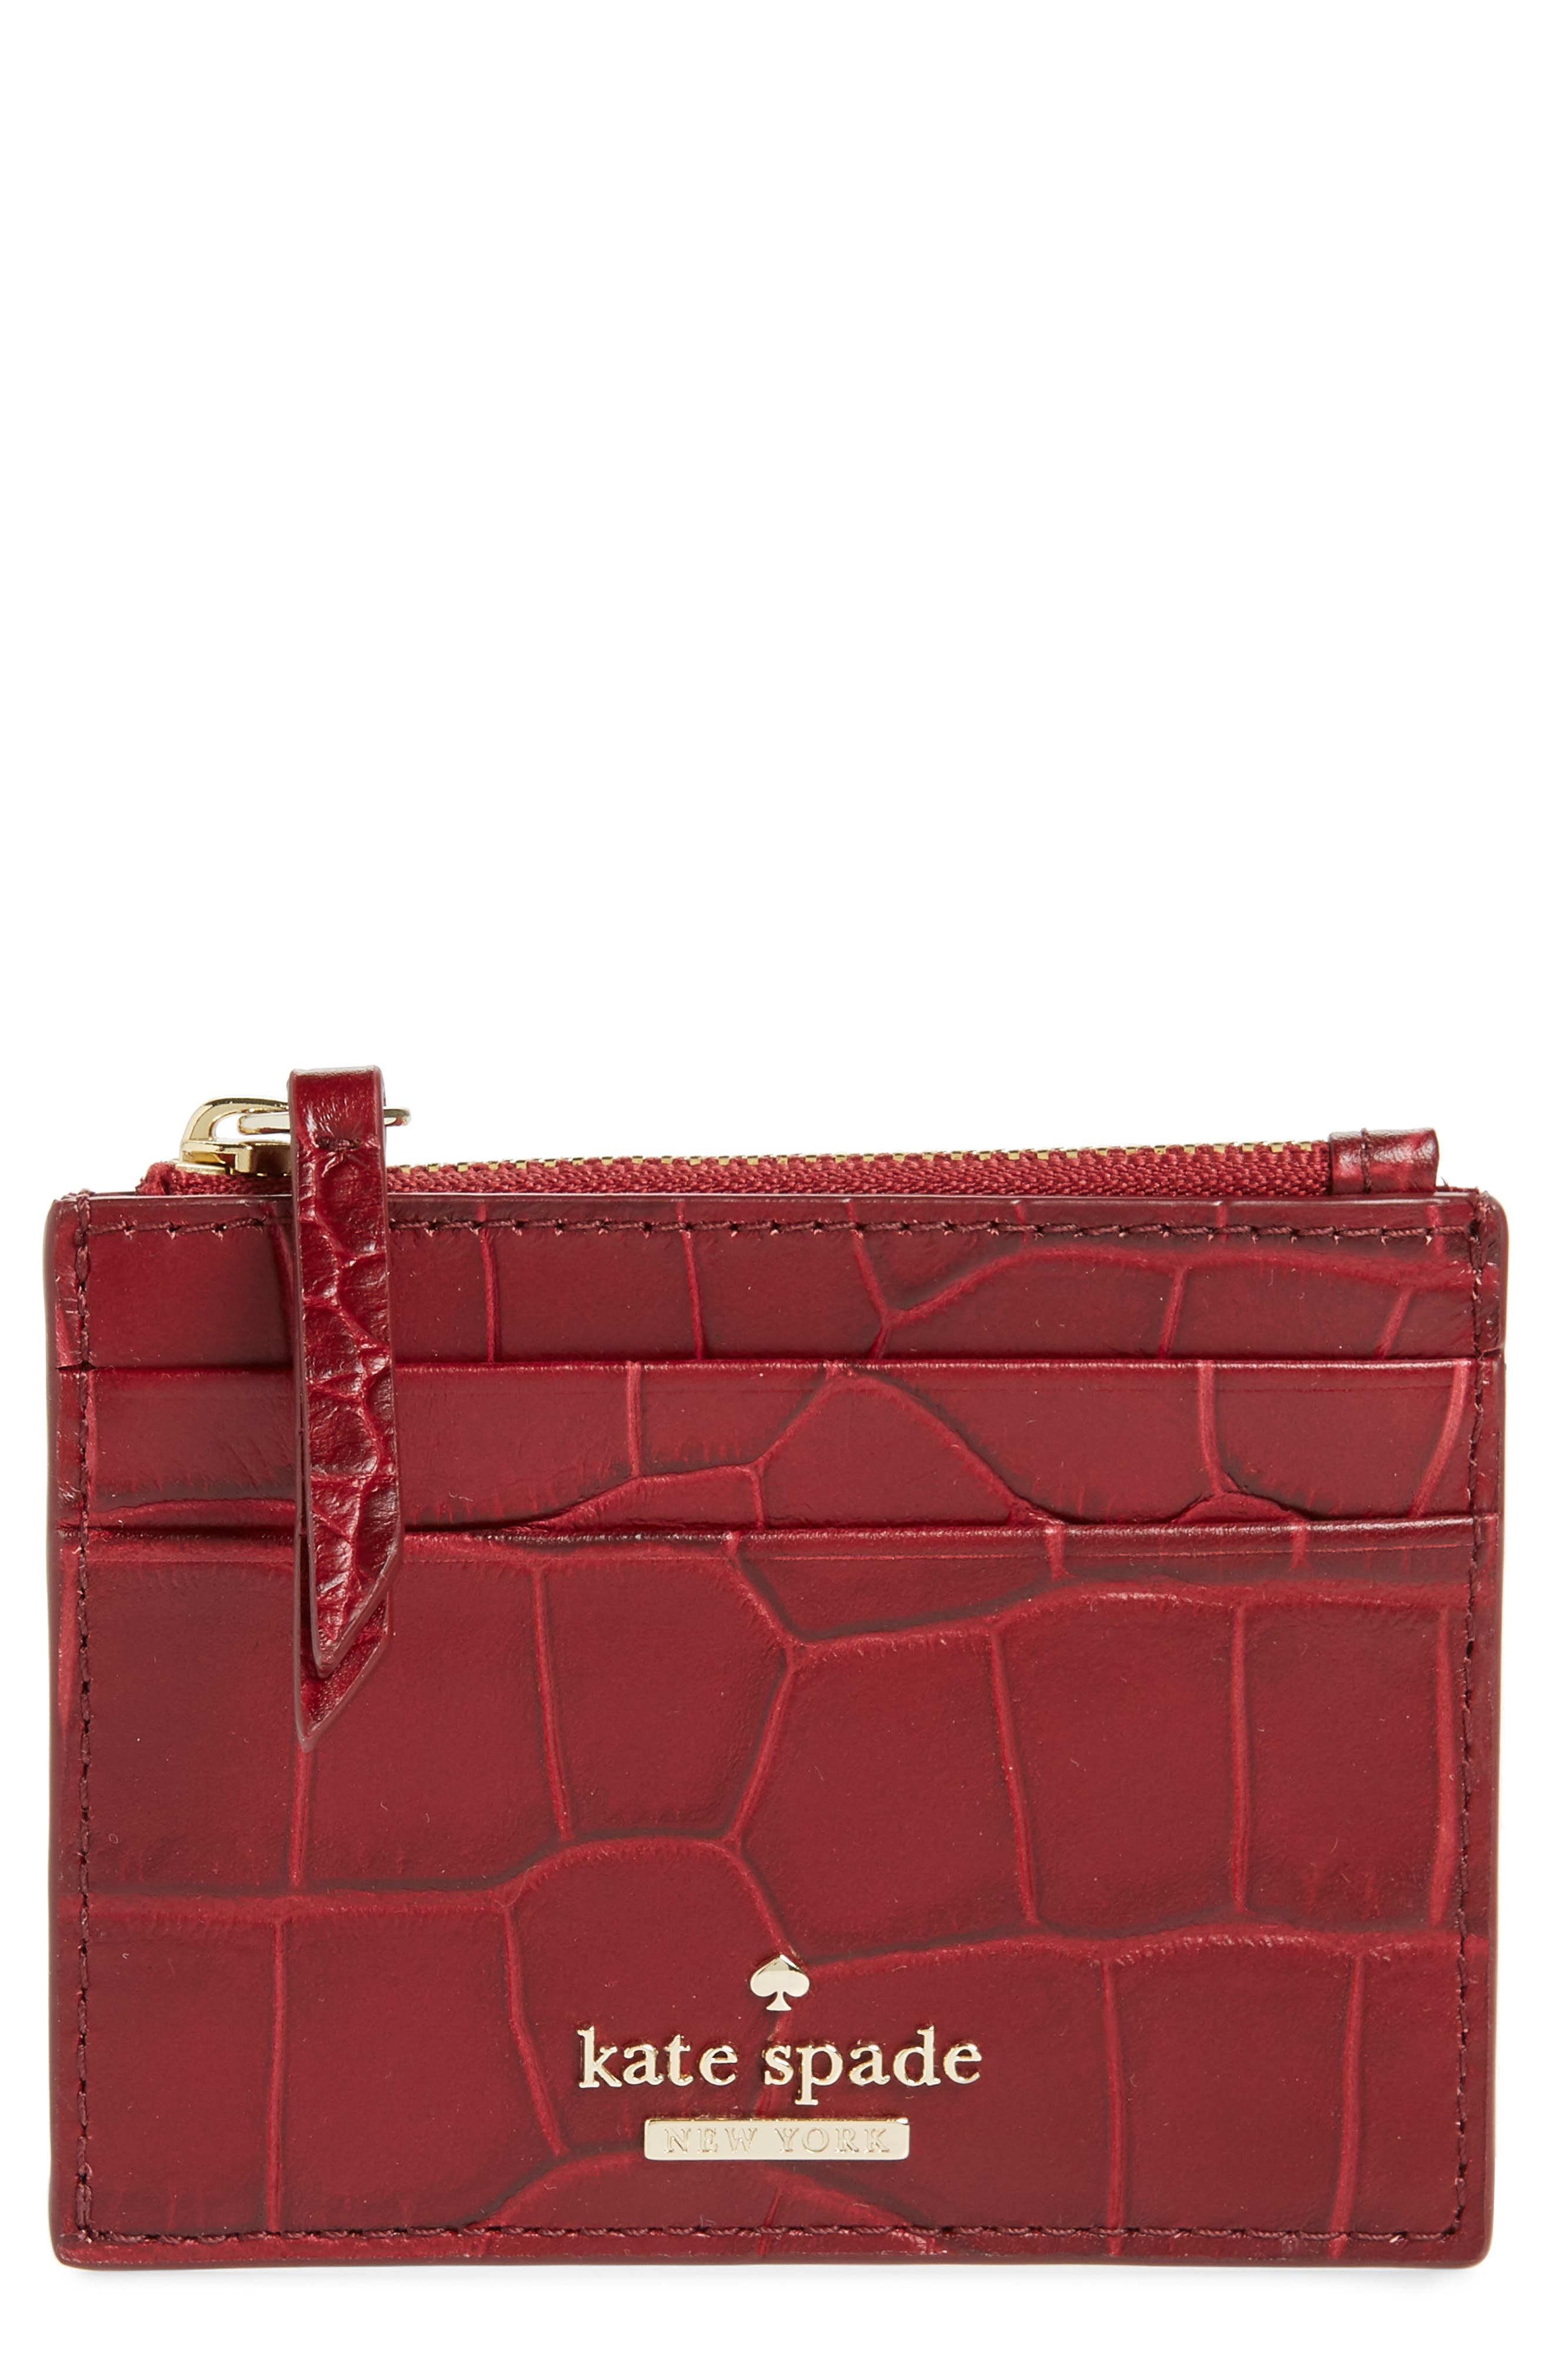 KATE SPADE NEW YORK murray street - lalena croc embossed leather card case, Main, color, 600